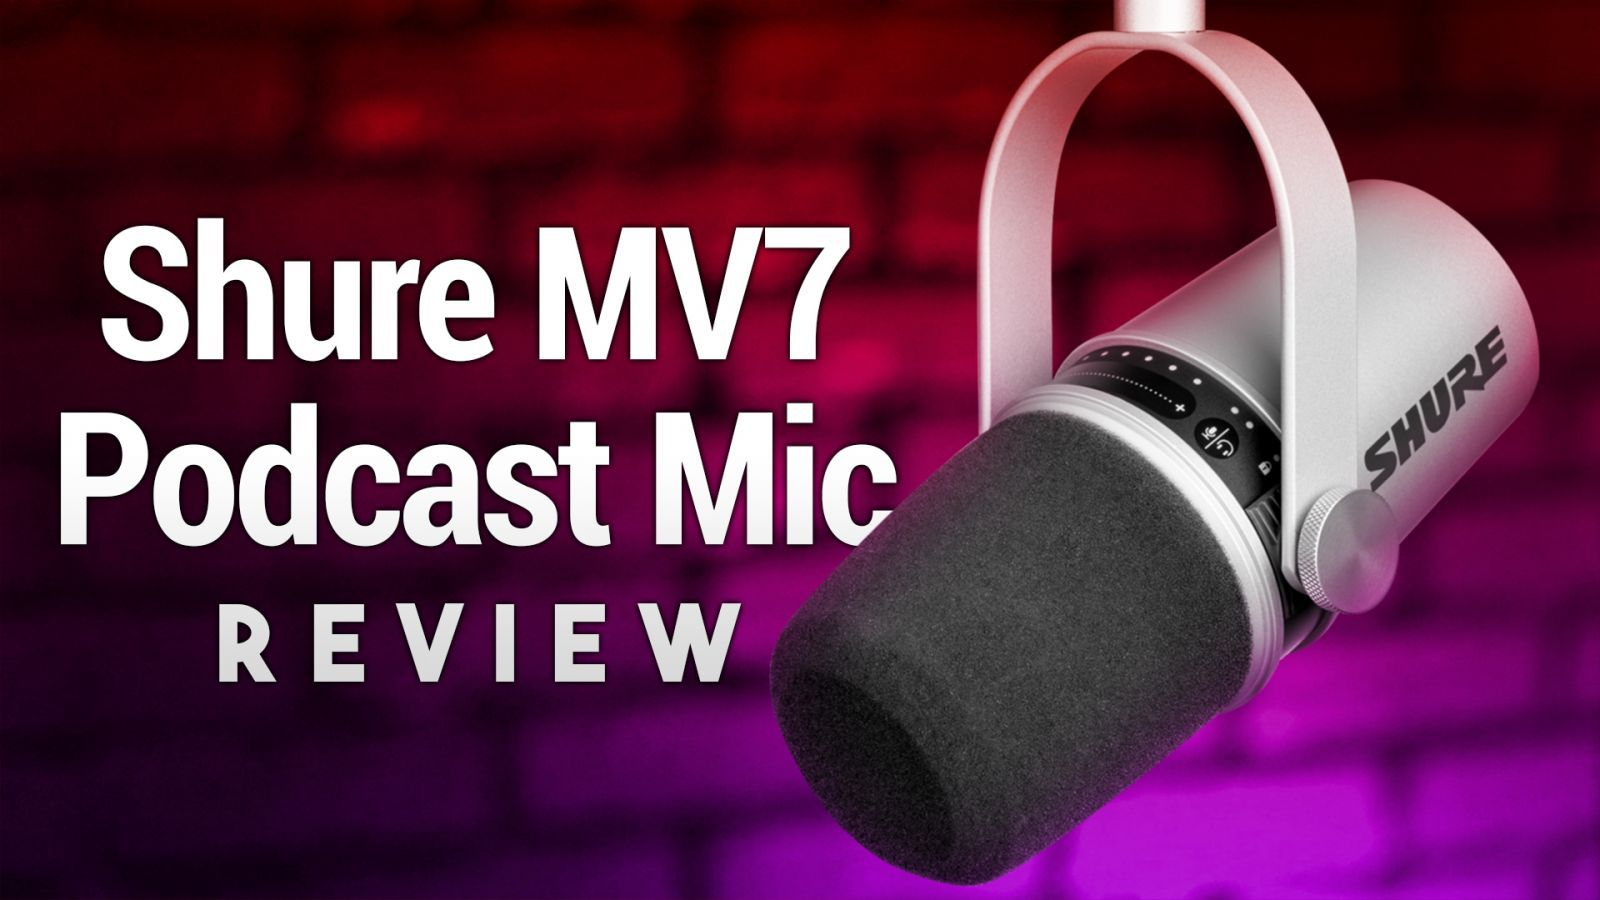 Shure MV7 Review - XLR/USB Streaming & Podcasting Microphone